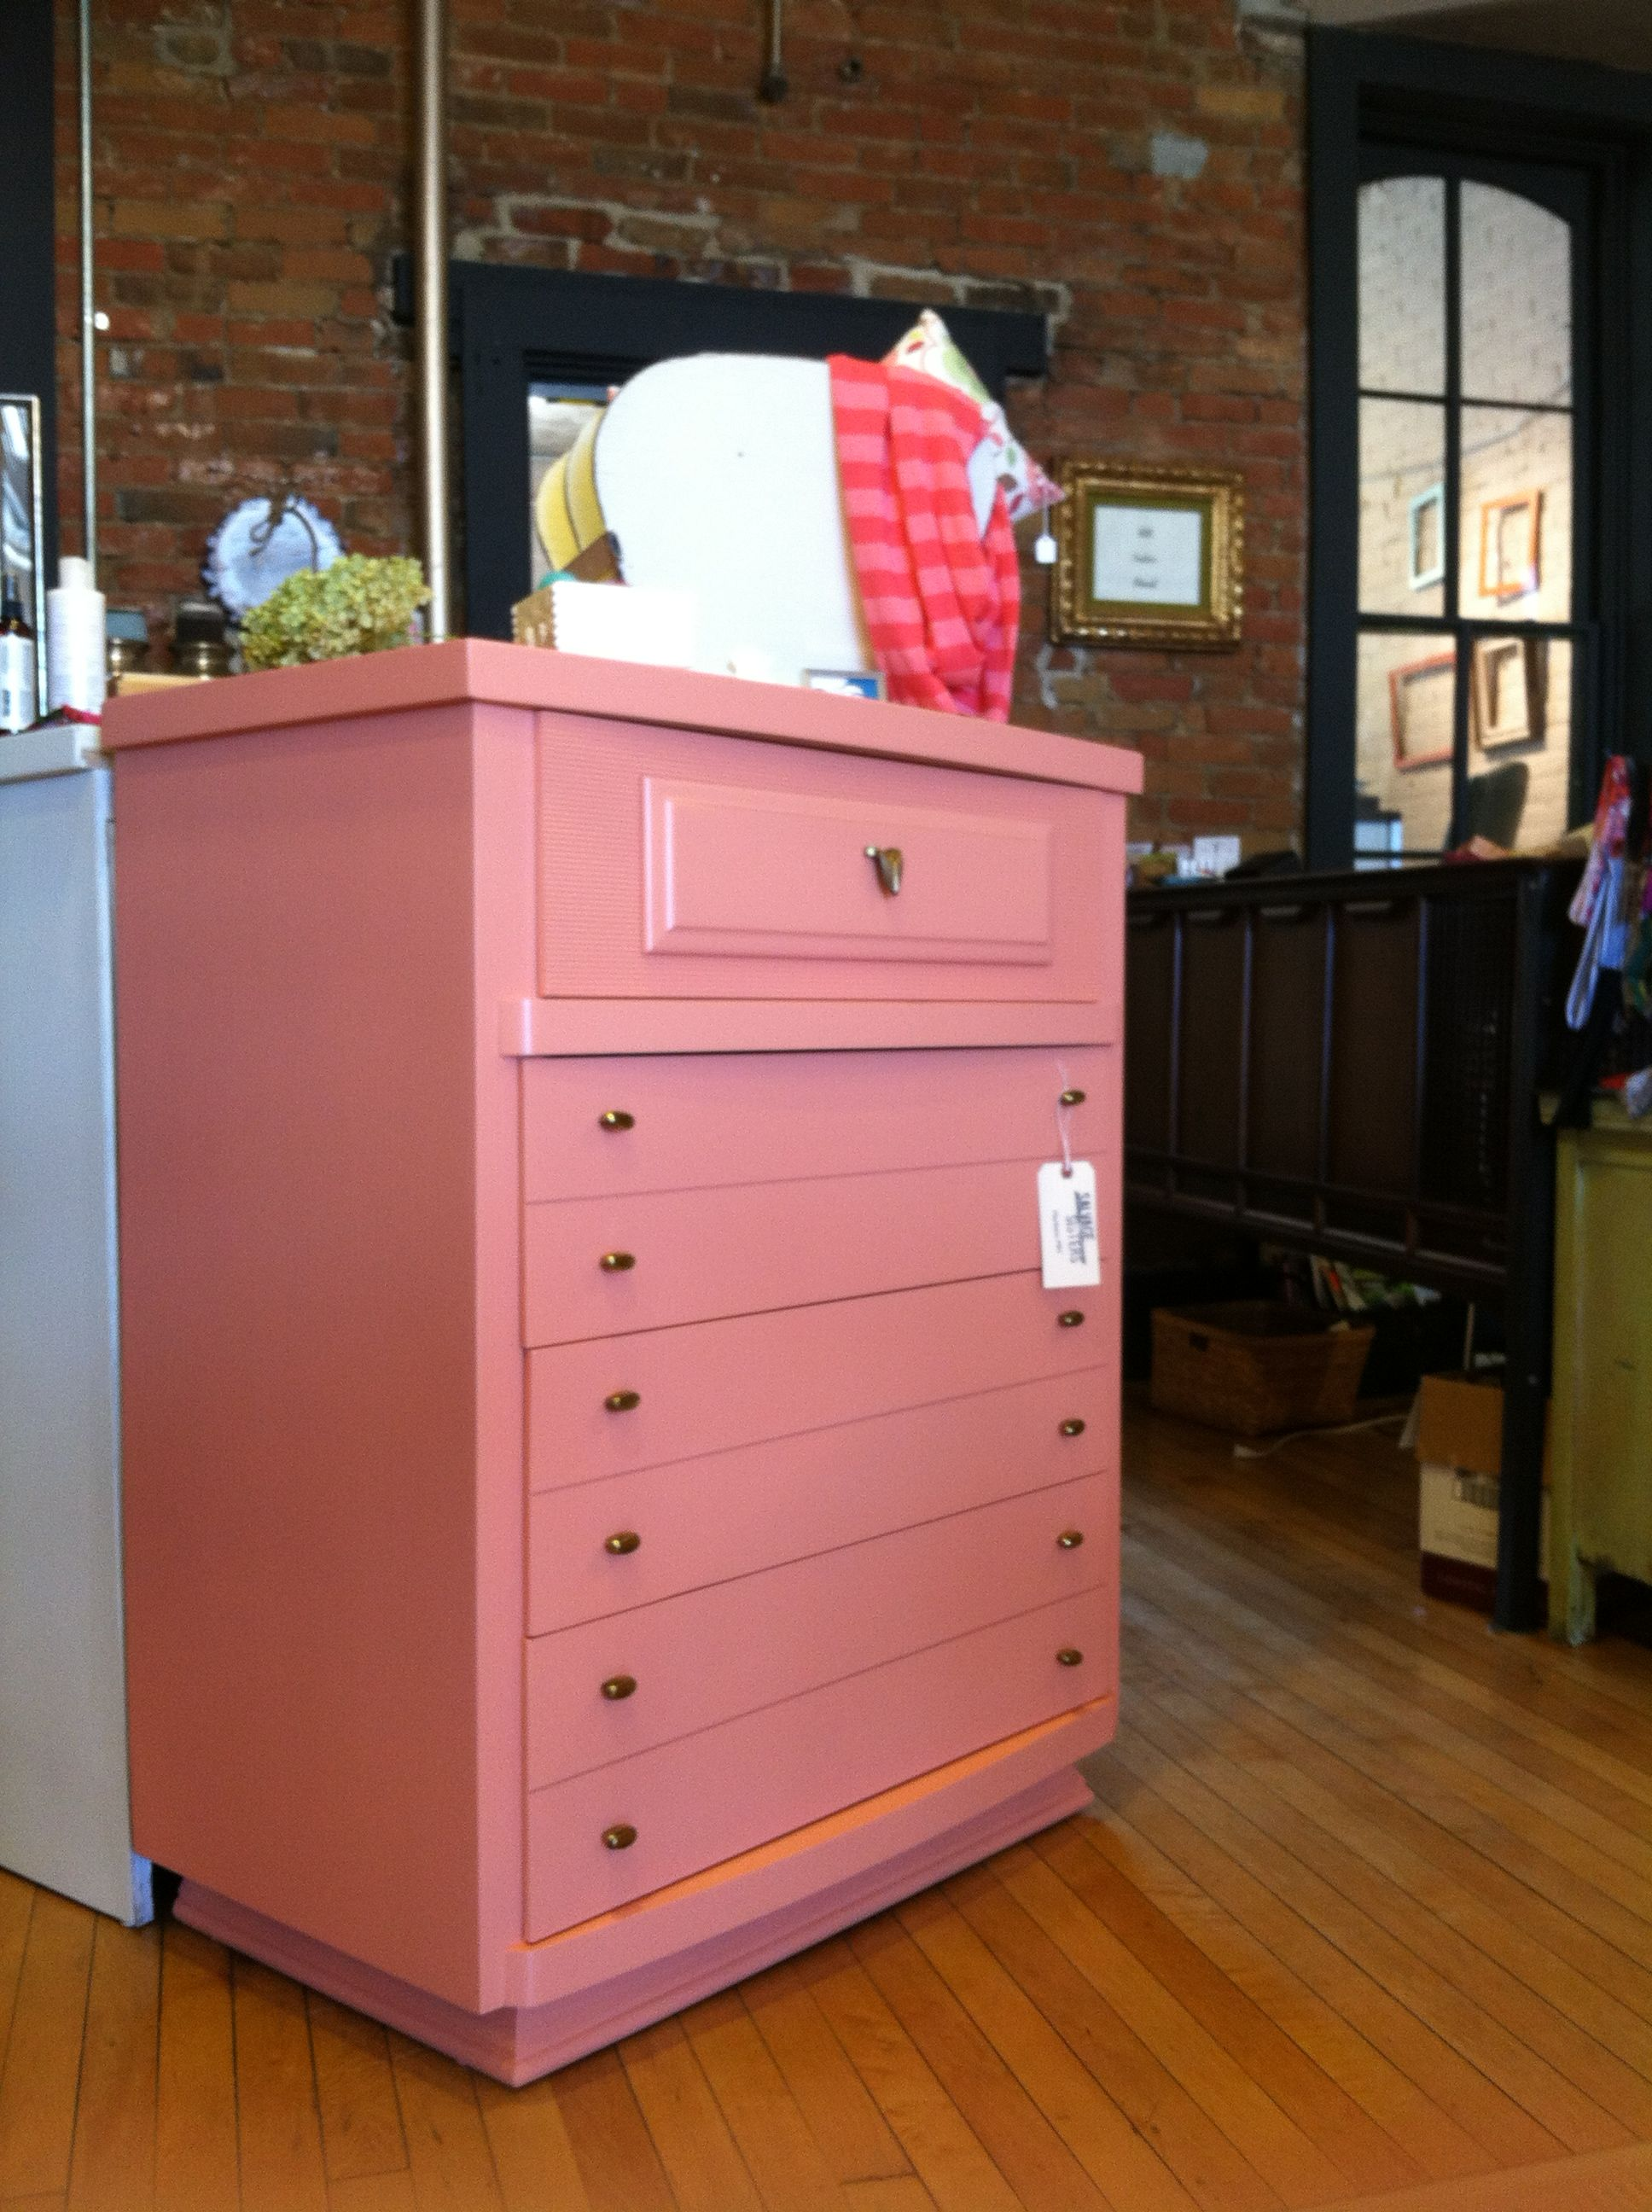 Ombre technique supplies and tips from sherwin williams - Sherwin Williams Sockeye 40 S Era Chest Of Drawers